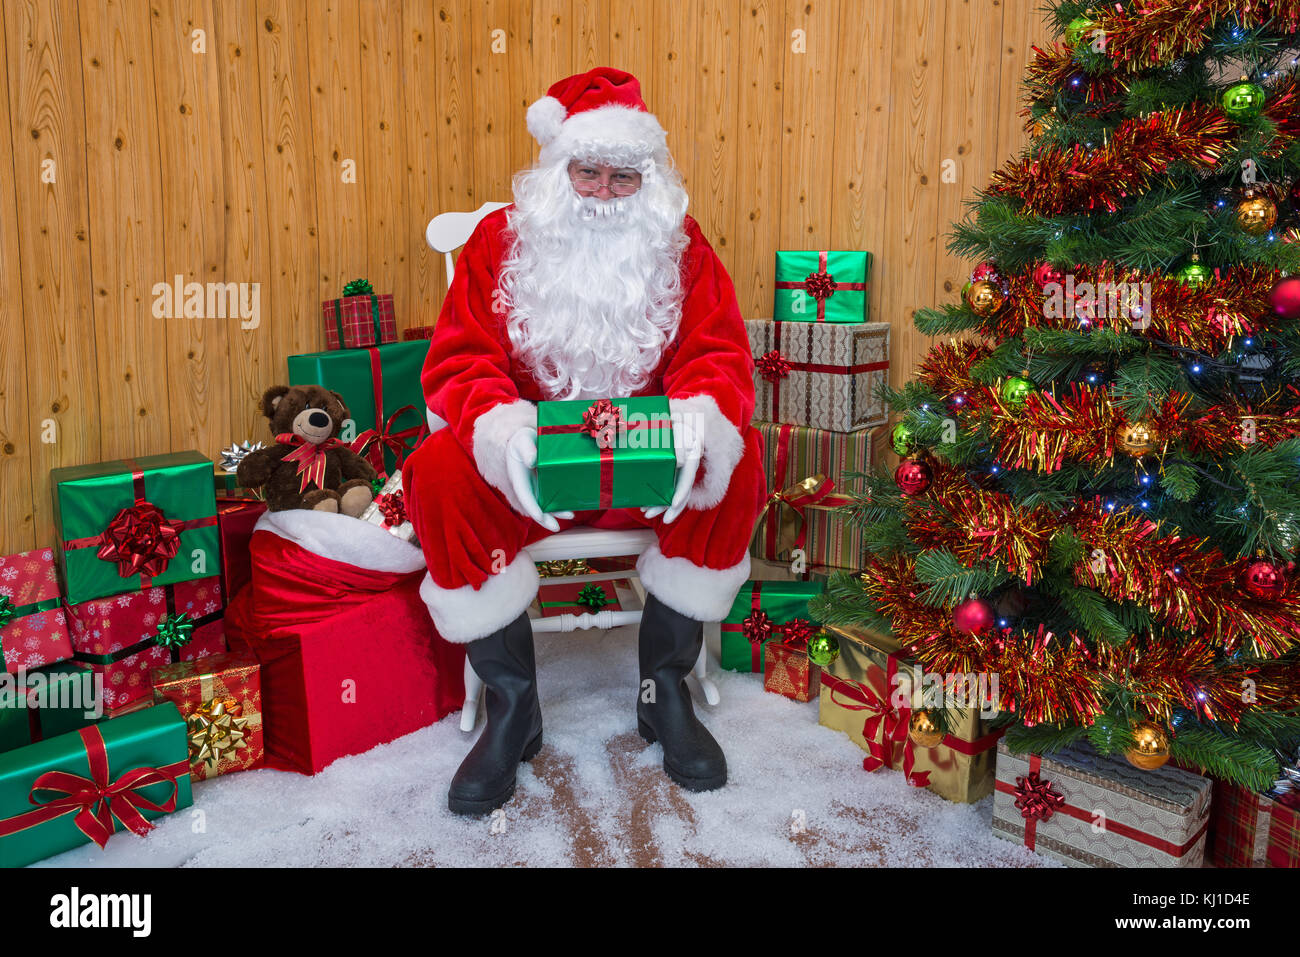 Santa Claus in his grotto surrounded by a Christmas tree with presents and gift wrapped boxes - Stock Image